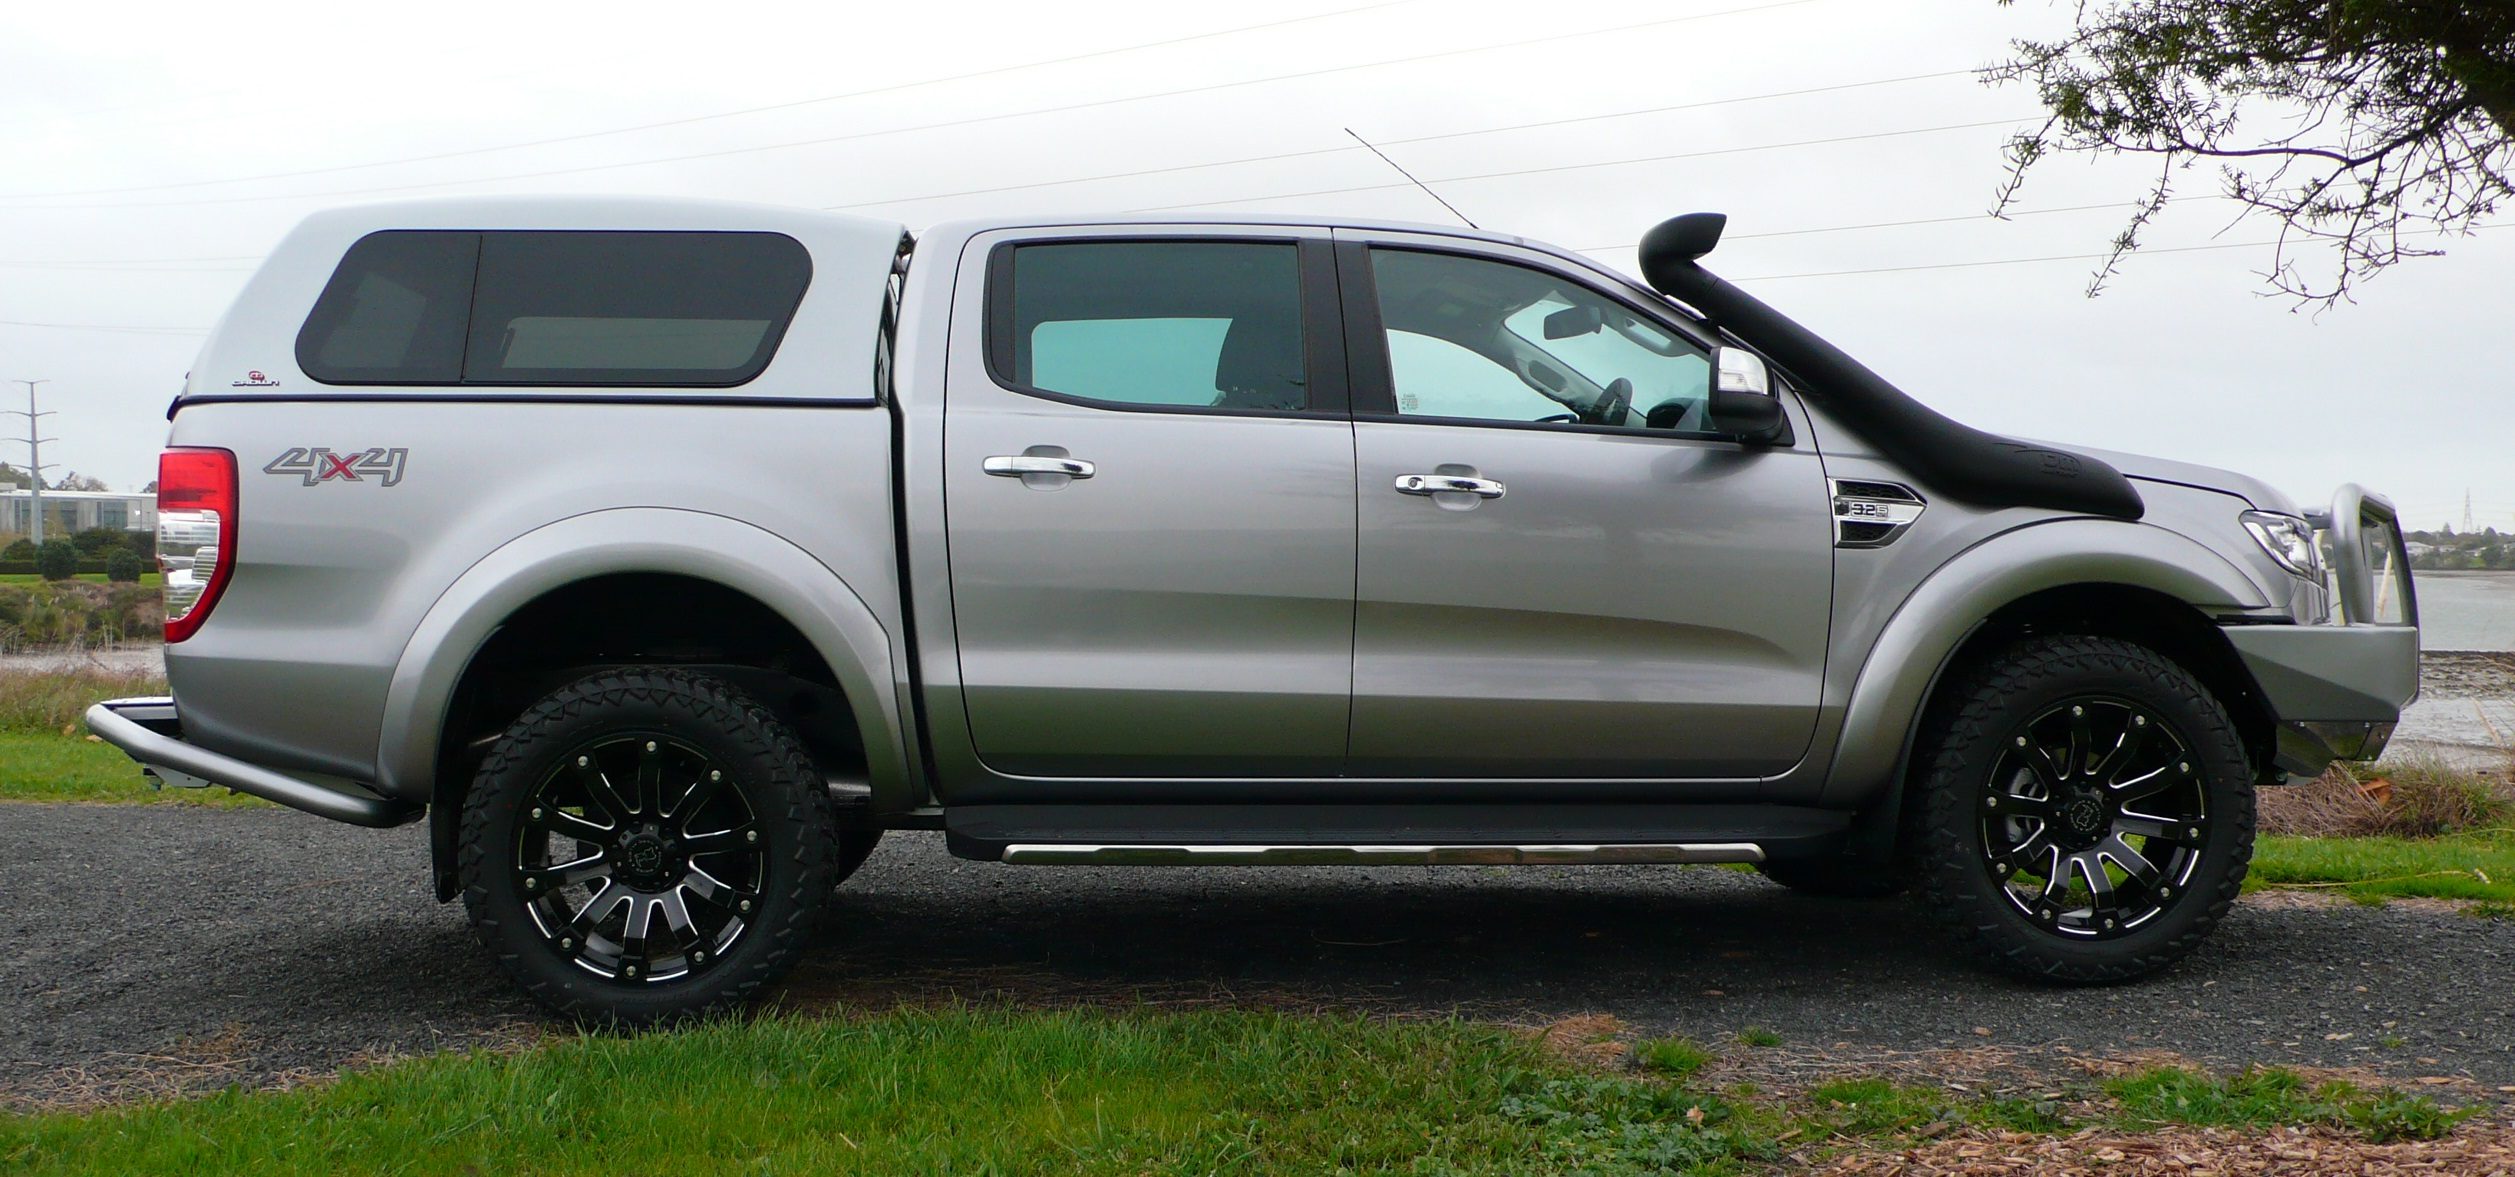 Ranger Raptor Philippines >> Photos of Black Rhino Wheels For Truck and Truck